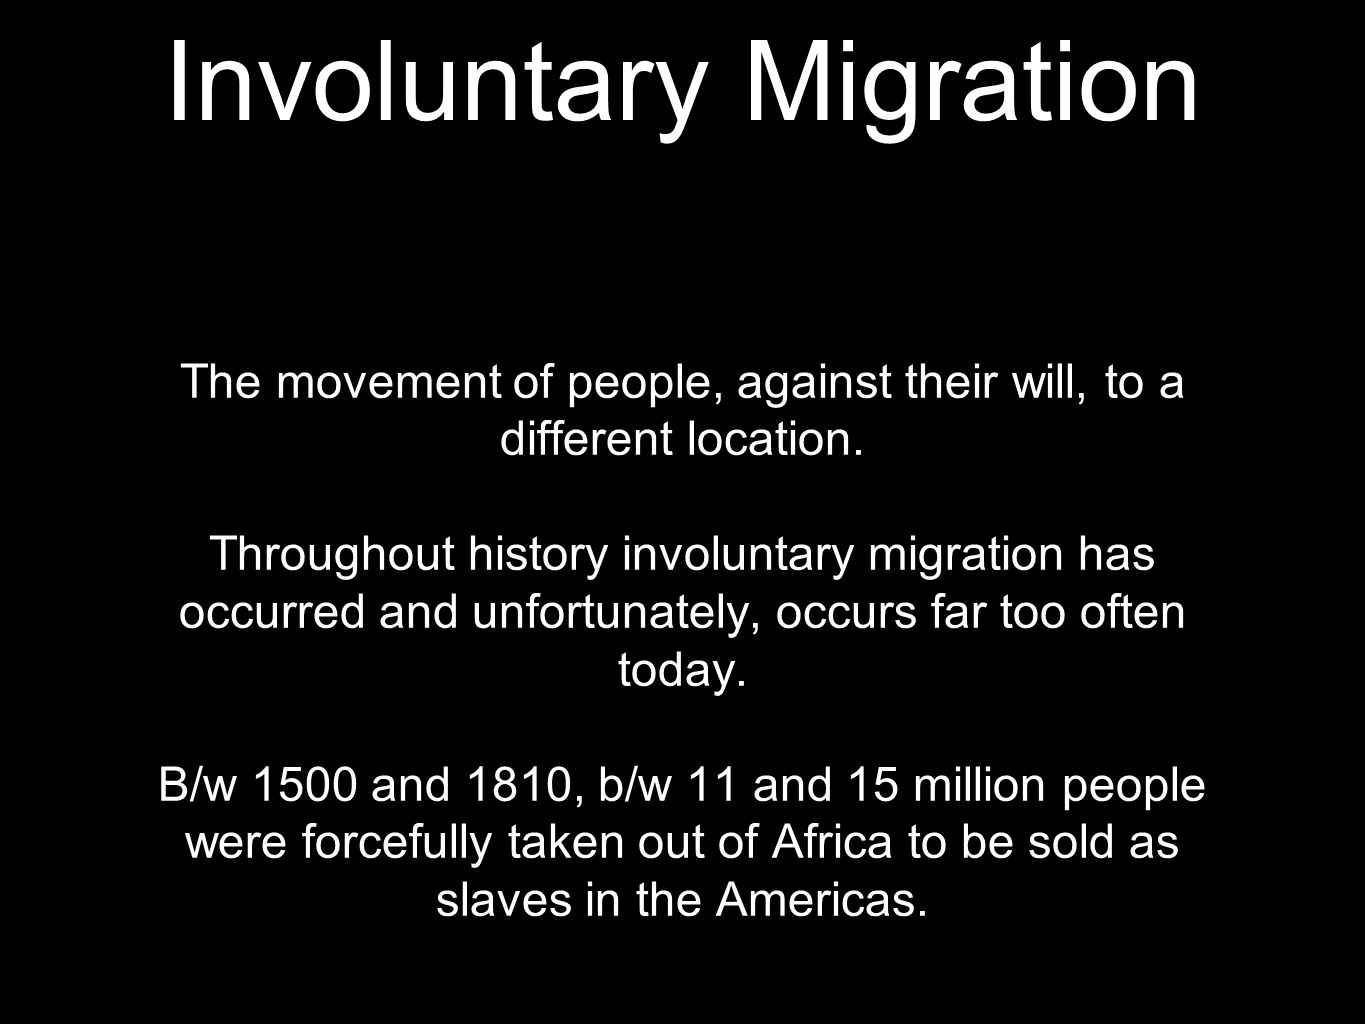 Involuntary Migration The movement of people, against their will, to a different location.